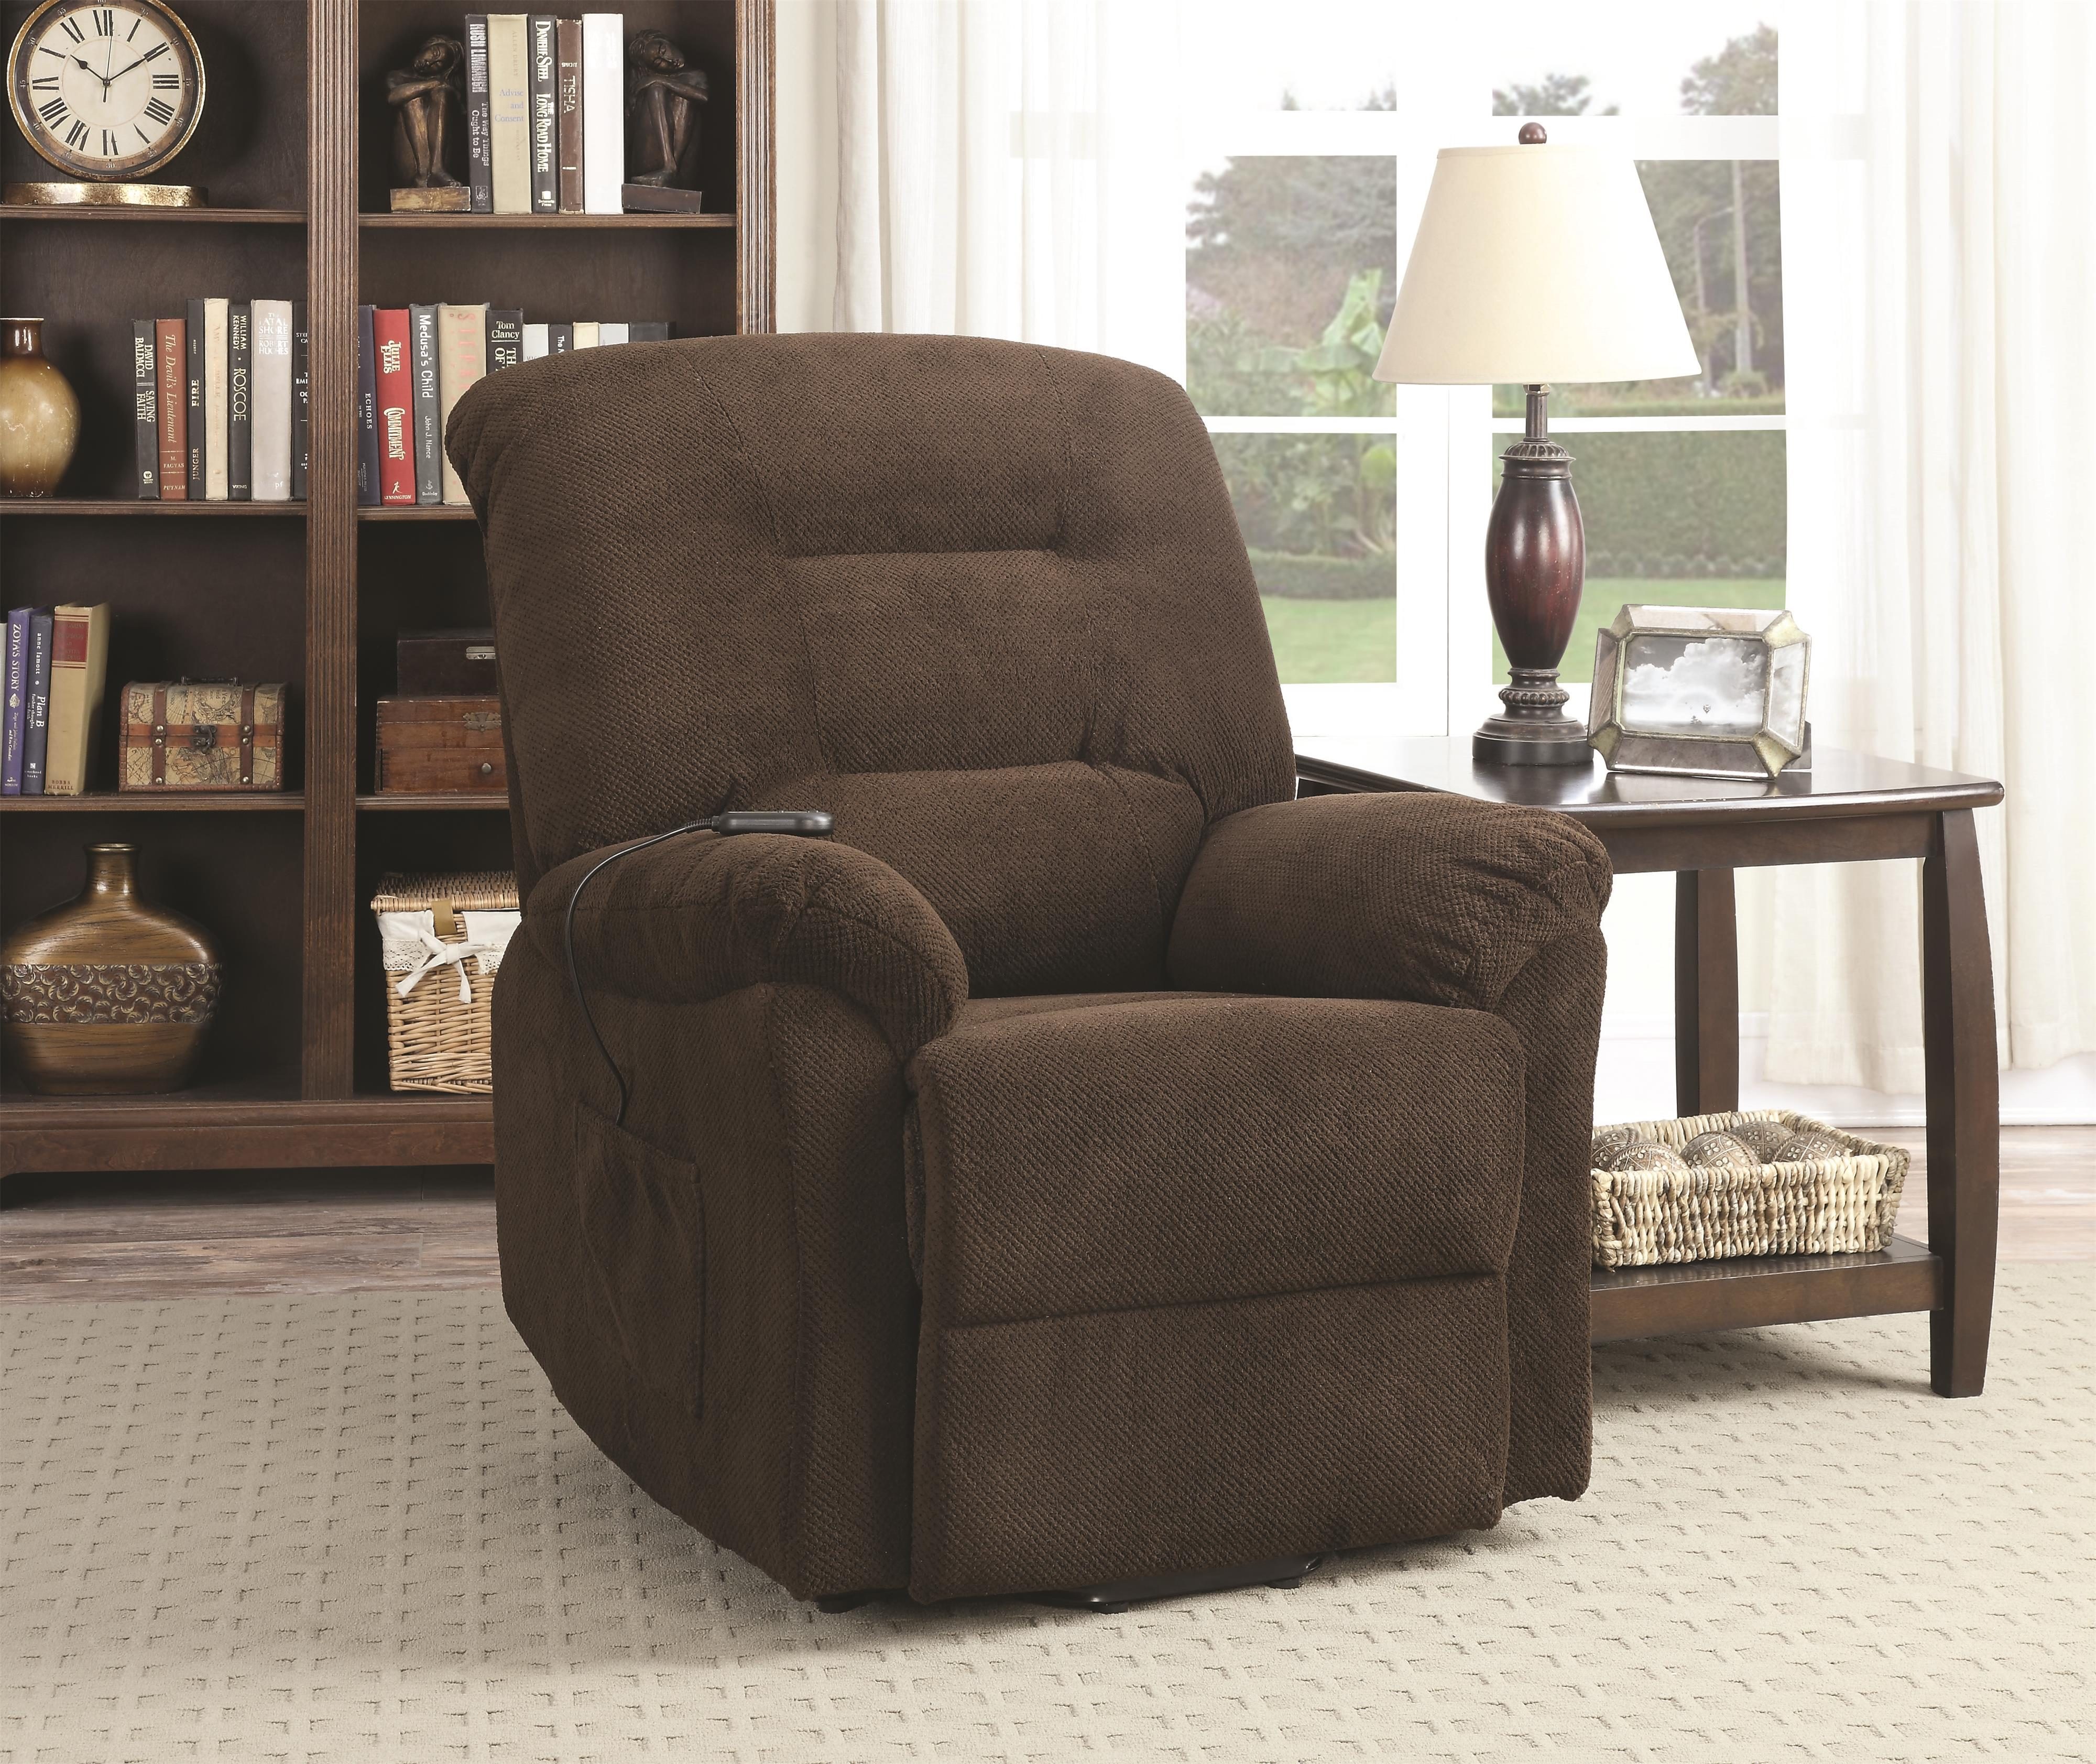 Coaster Recliners Power Lift Recliner Rife S Home